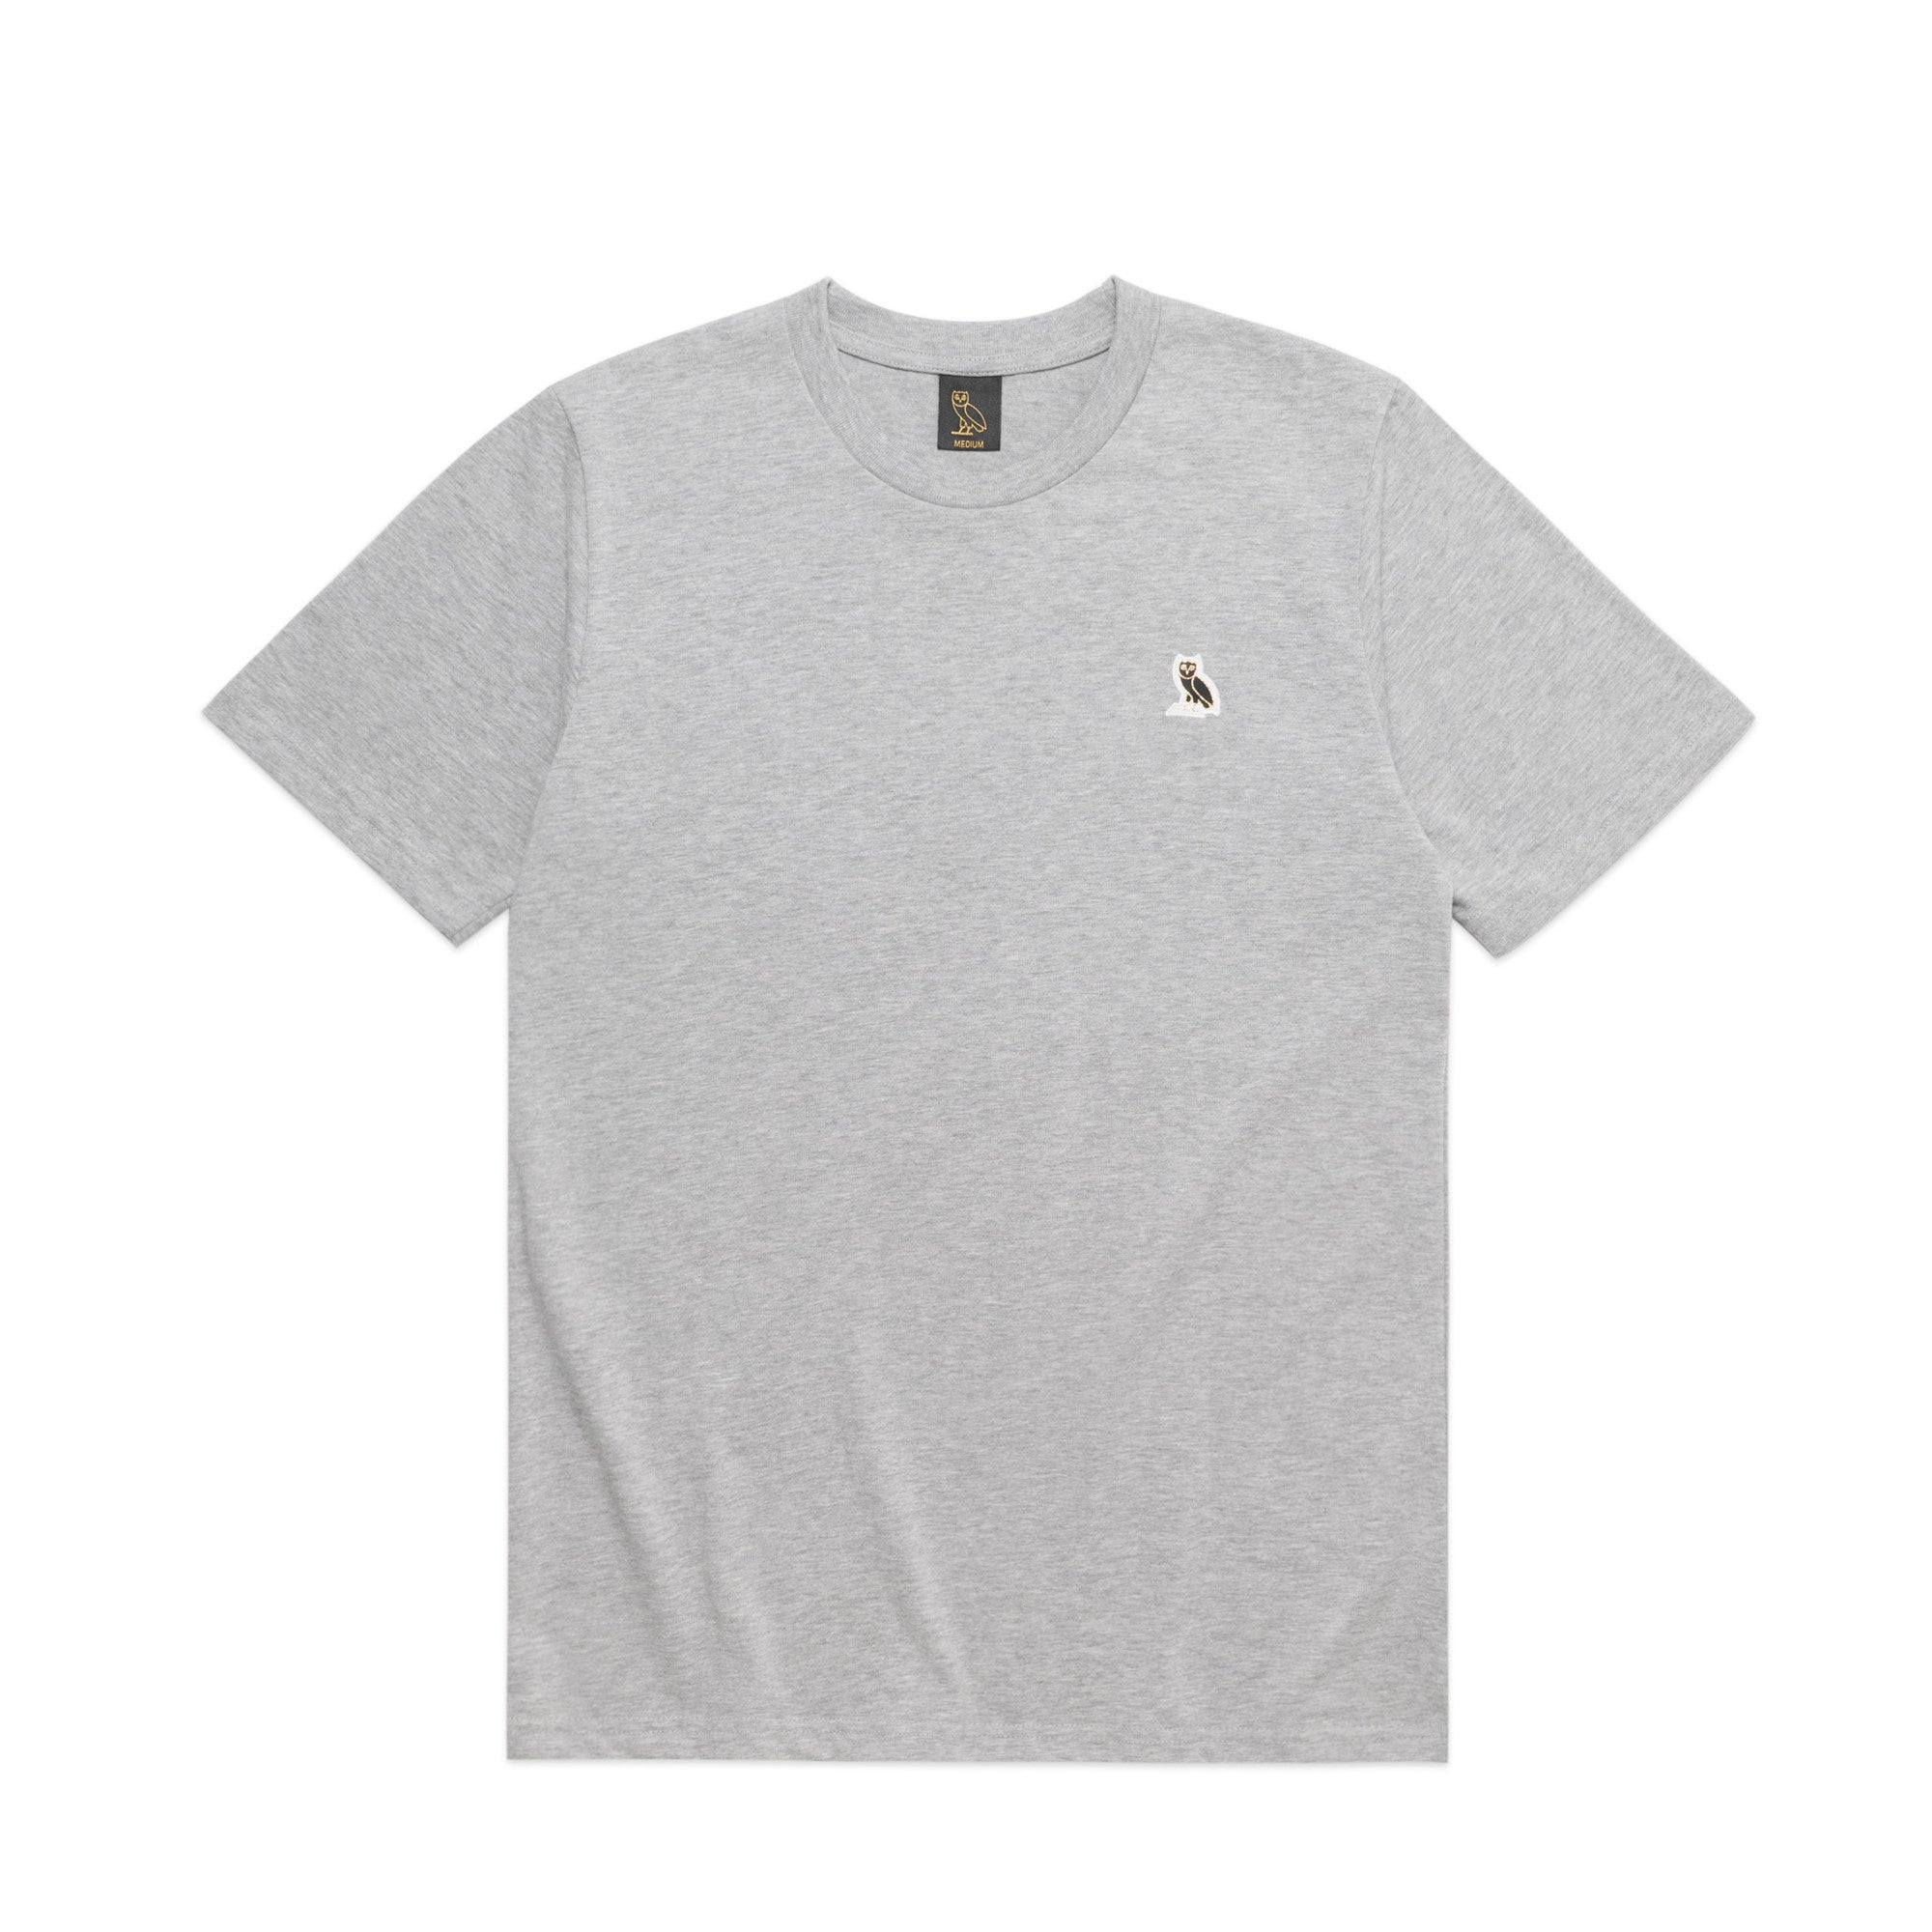 OWL LOGO PATCH TEE - GREY